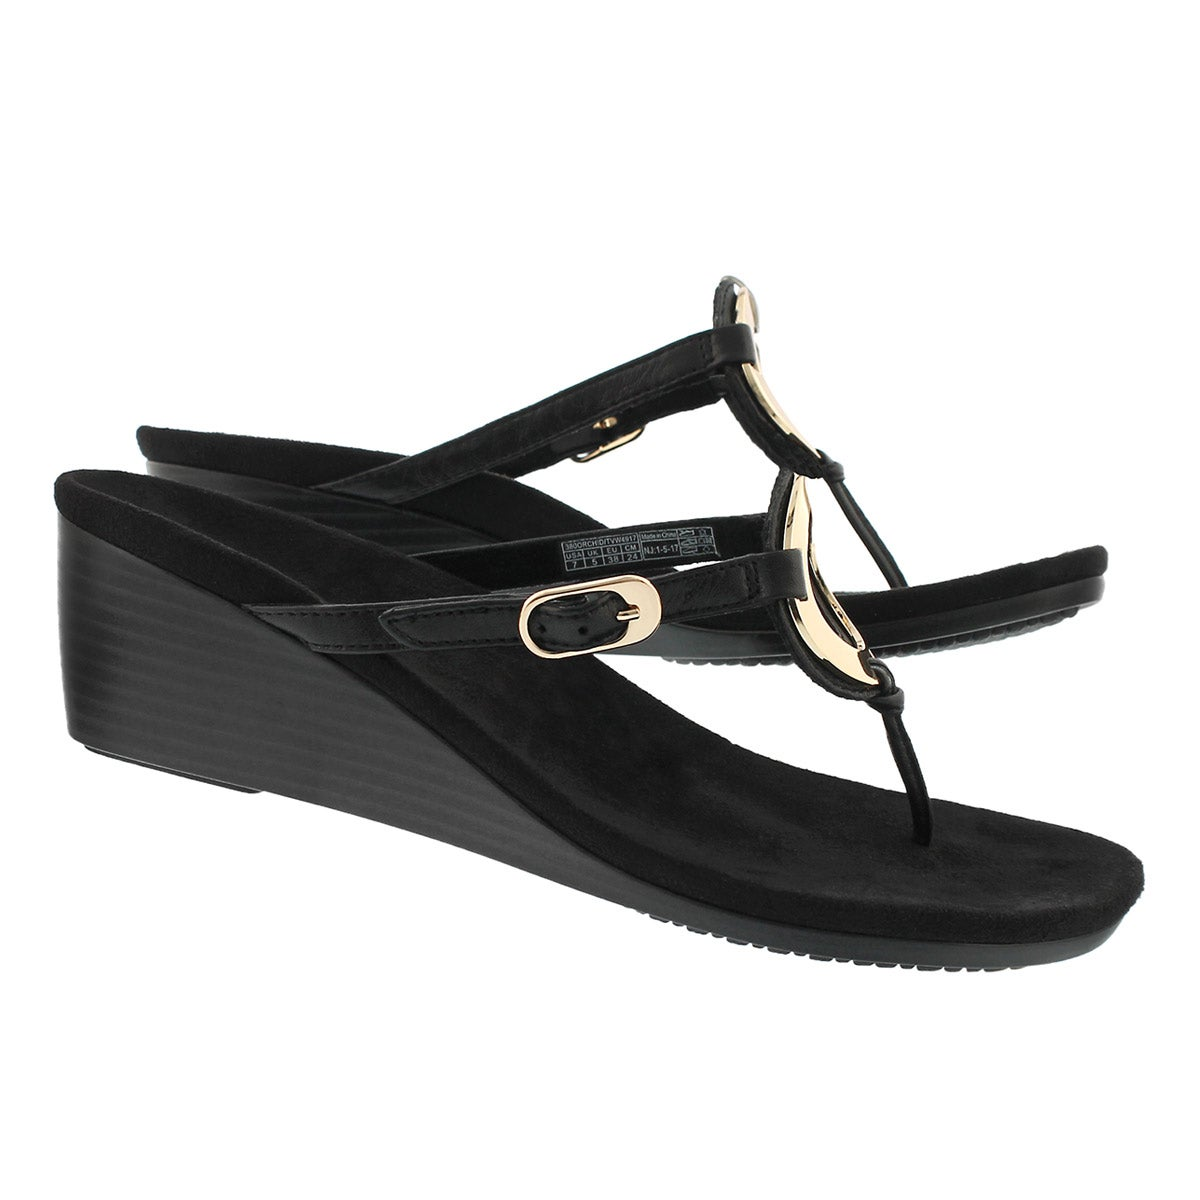 Lds Orchid bk arch support thng wdg sndl